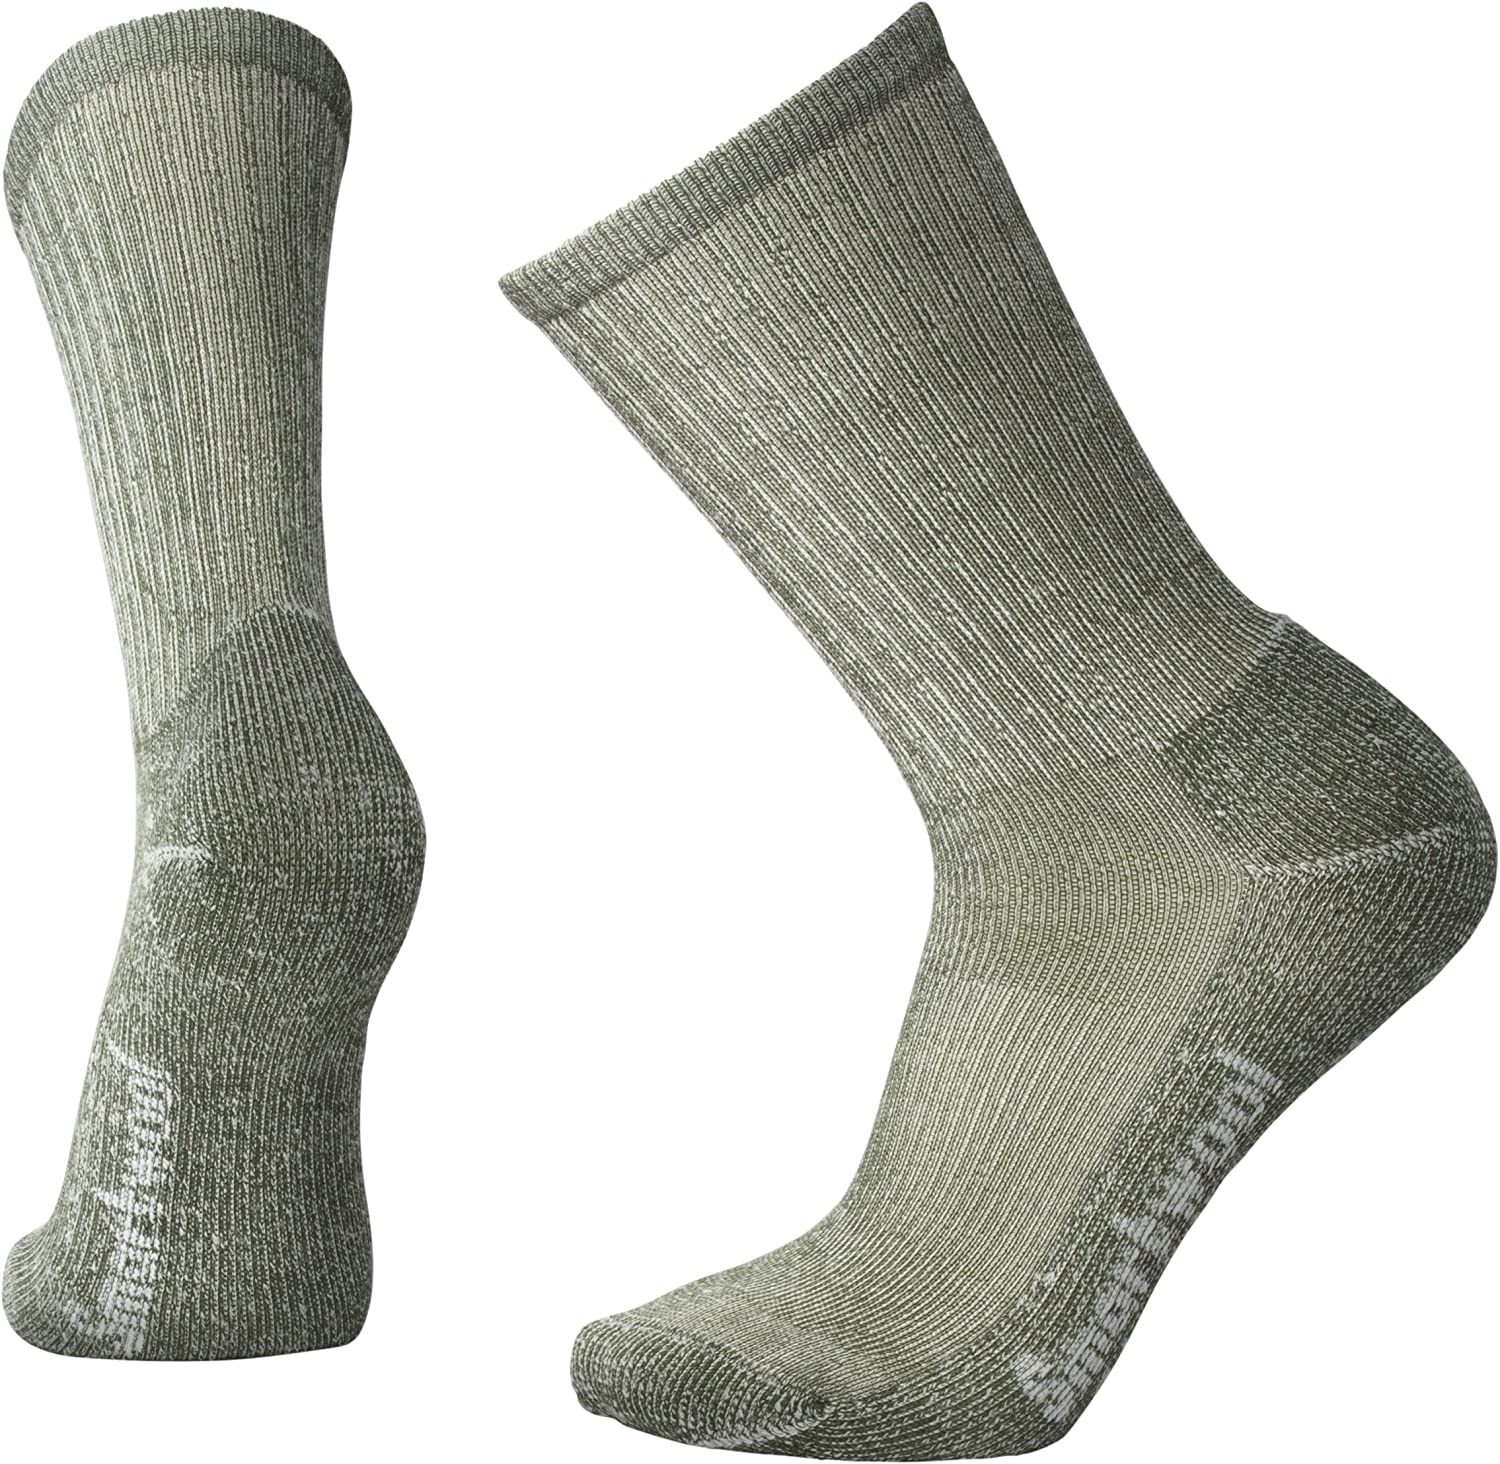 Smartwool Men Hike Light Crew Socks